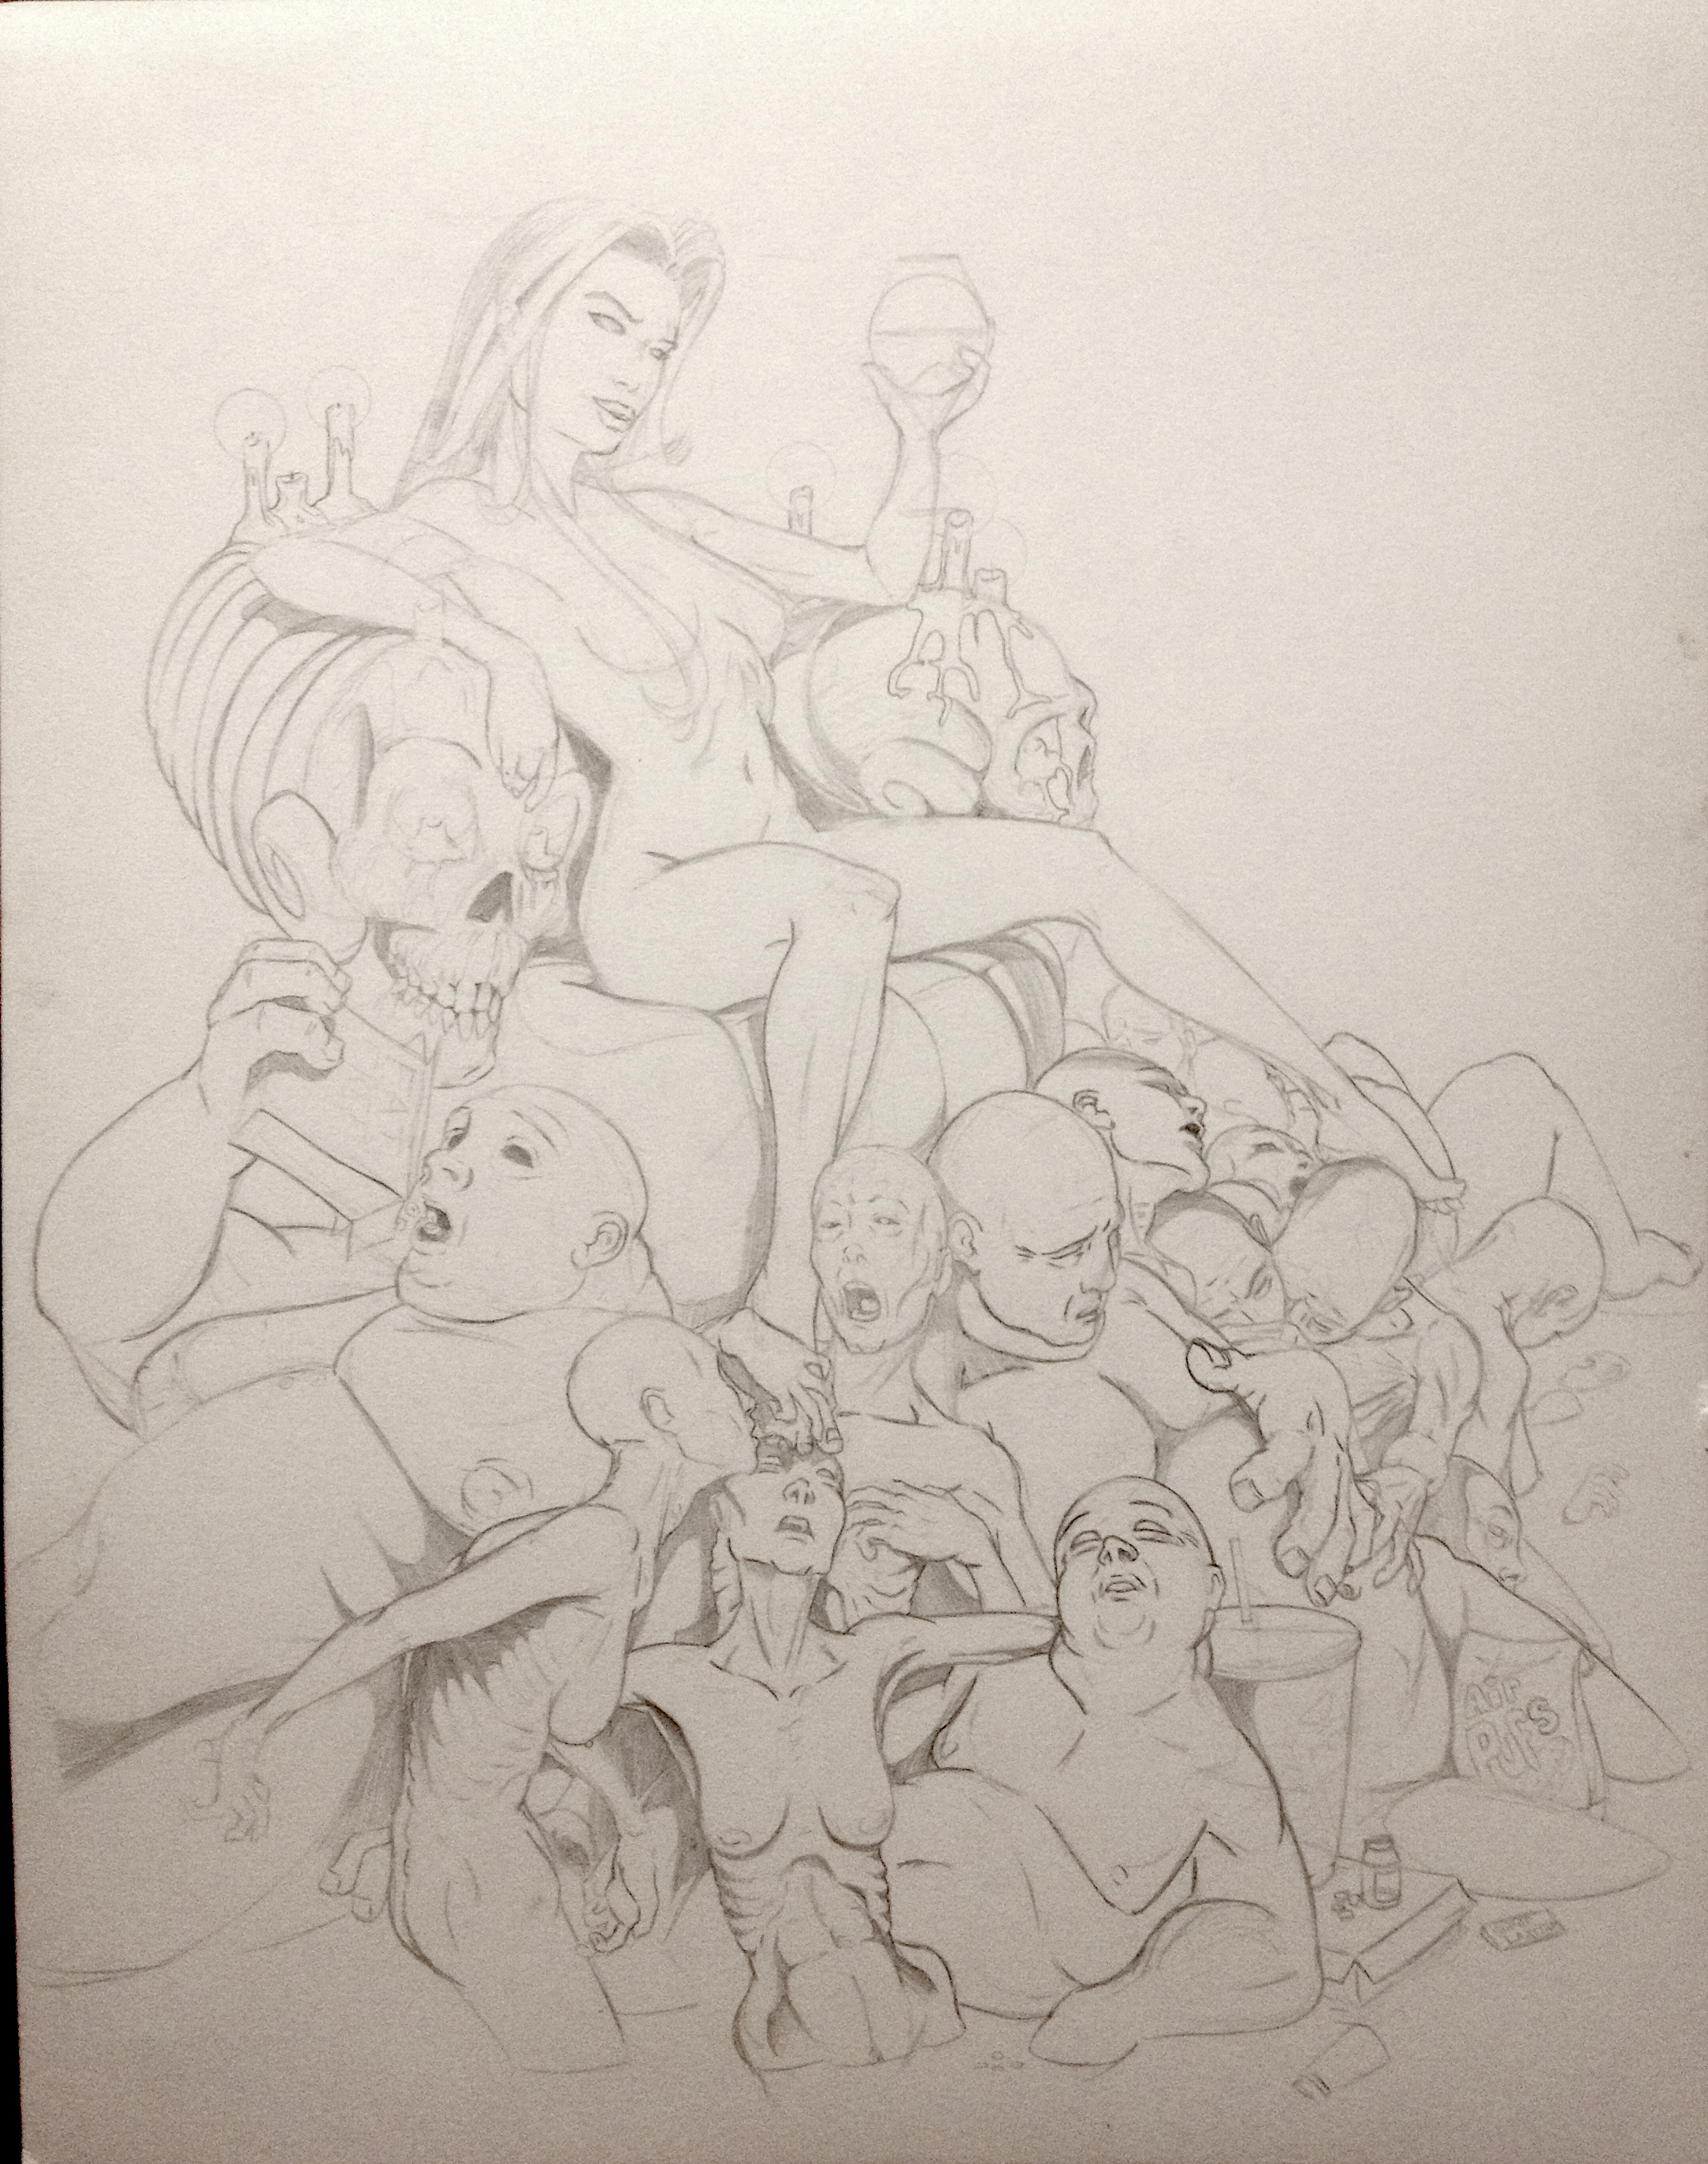 Unfinished Sketch of a Sin Gluttony